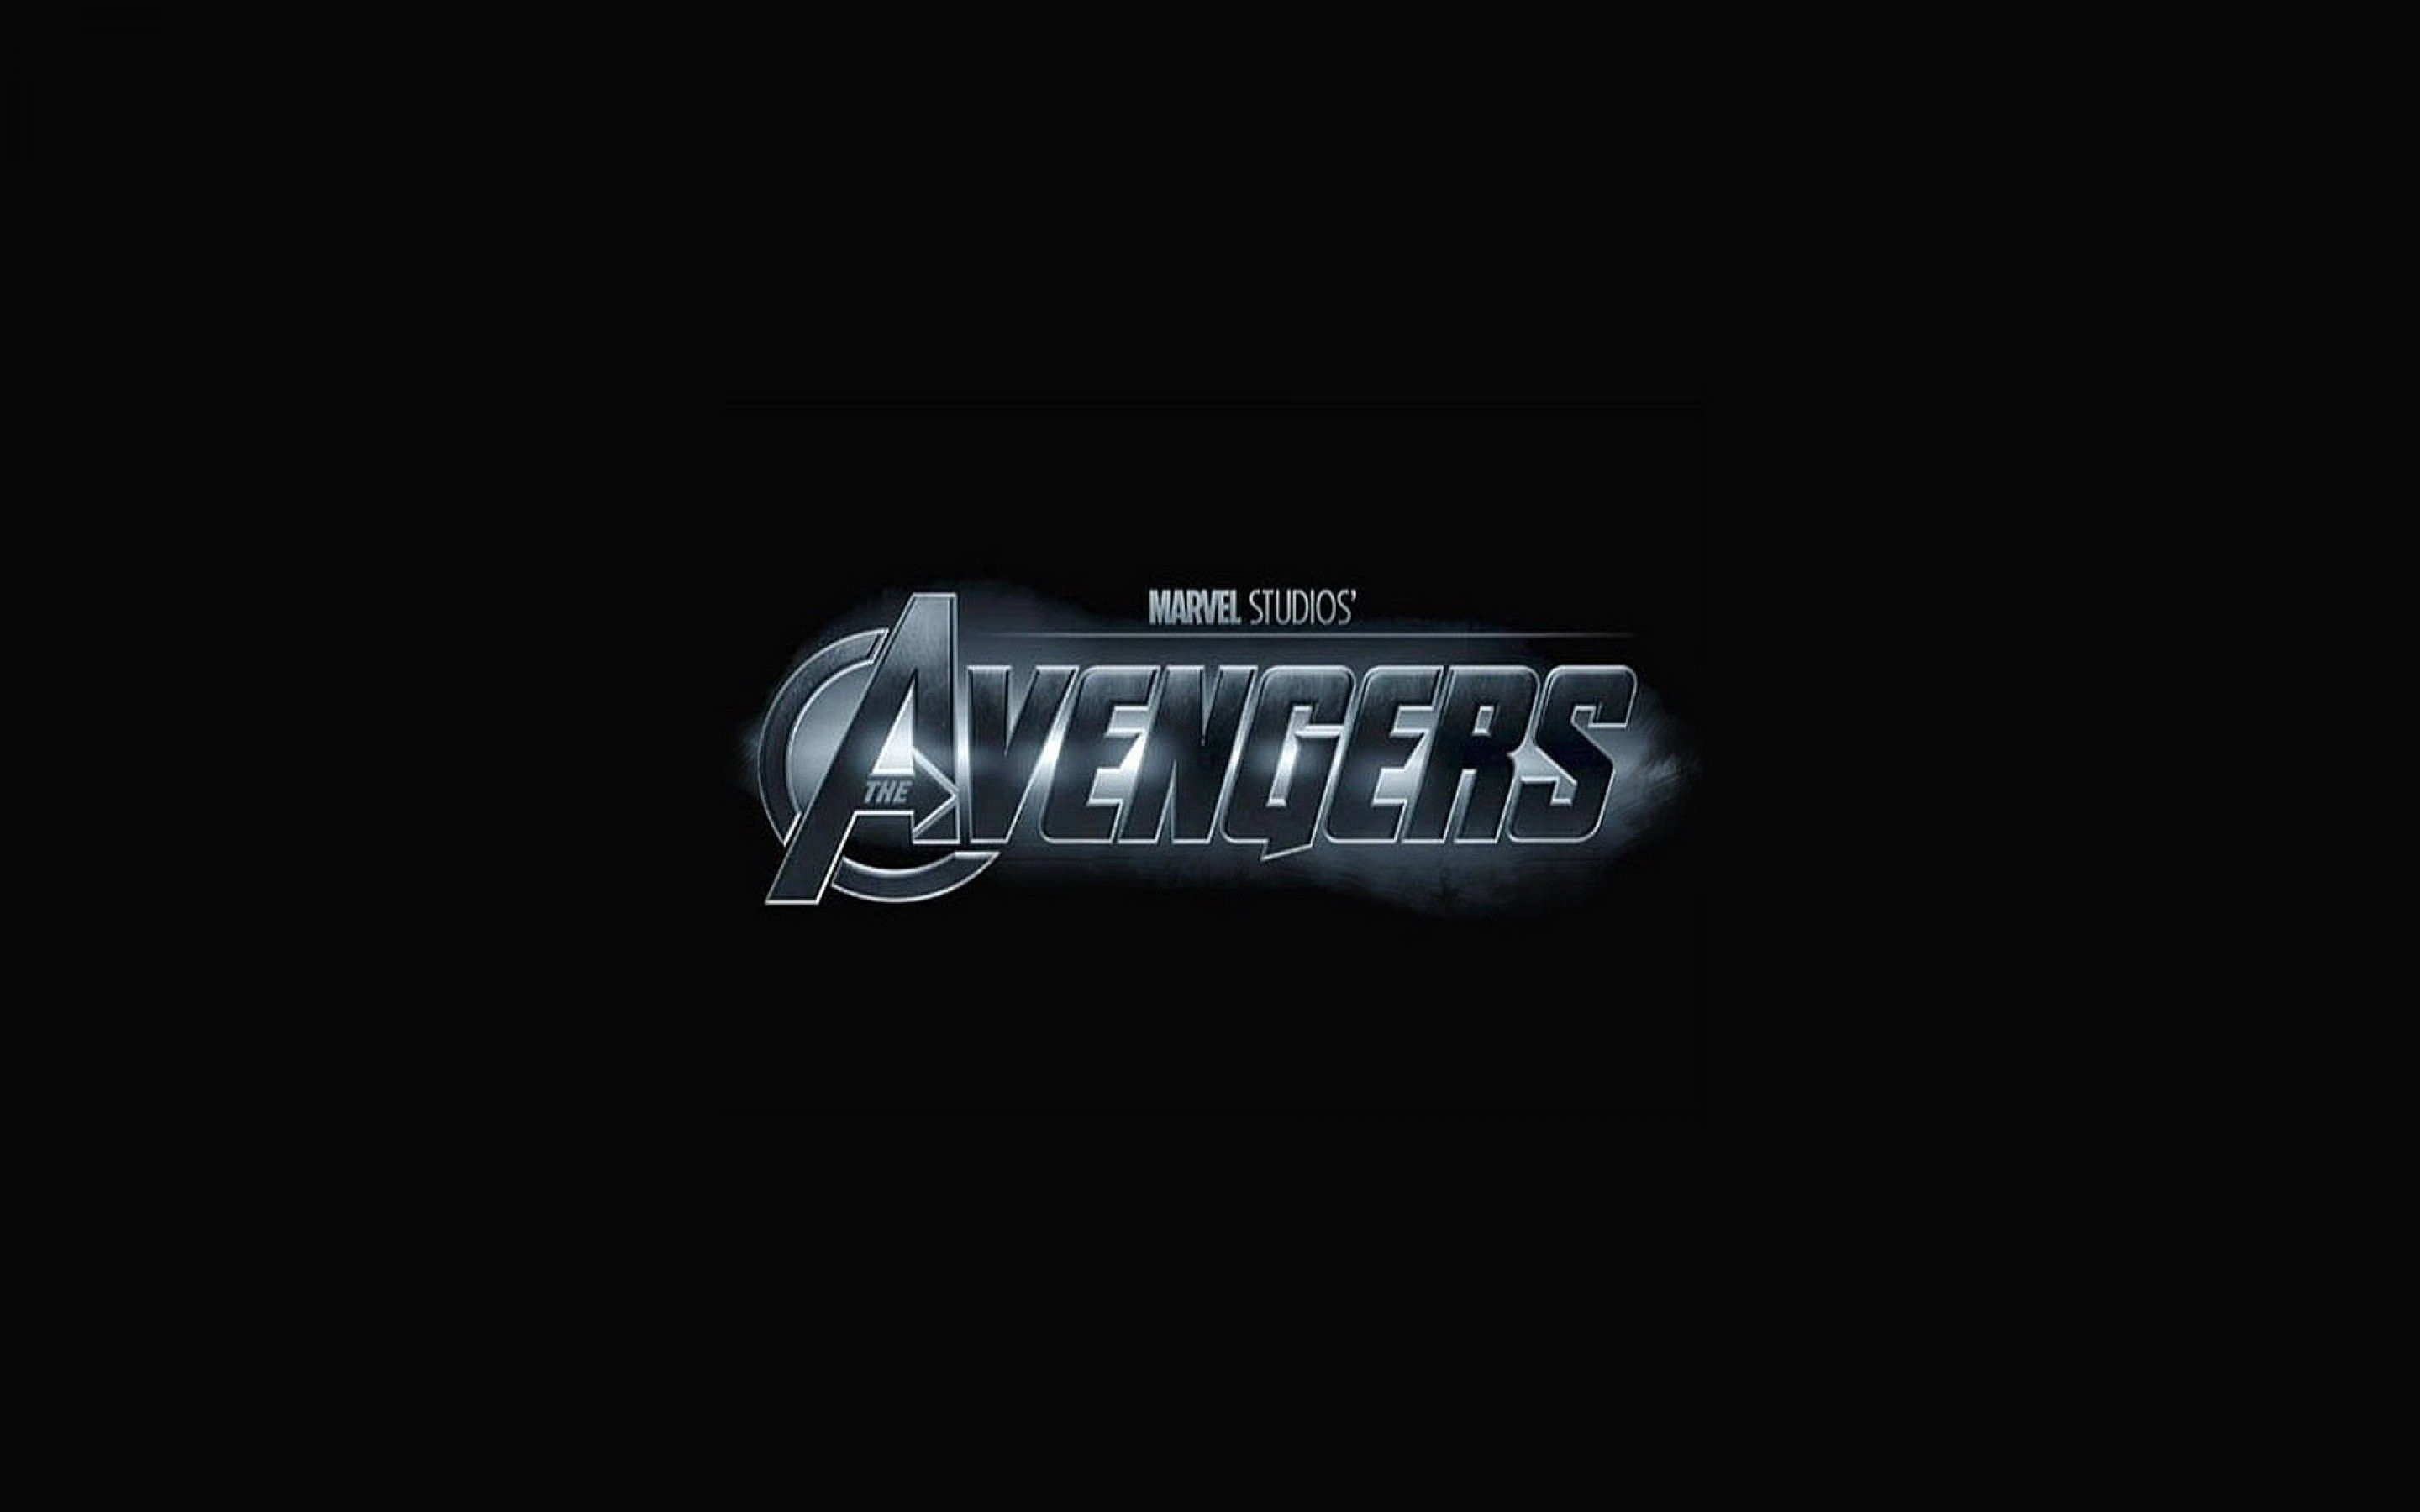 WallpapersWide.com | The Avengers HD Desktop Wallpapers for .